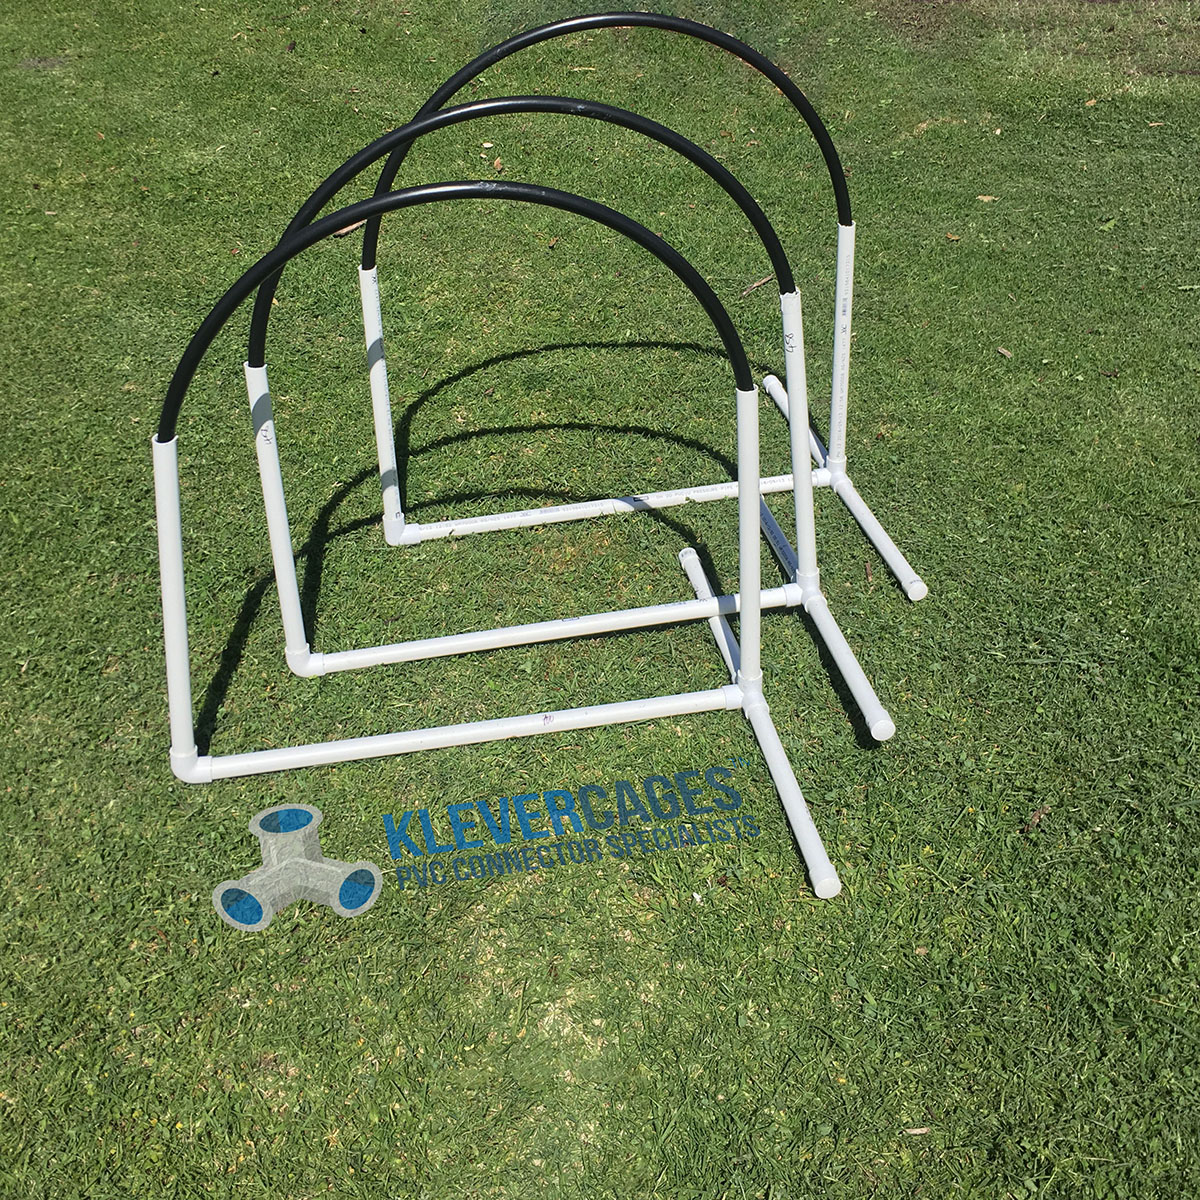 DIY affordable dog agility nadac hoops for your dog agility obstacle australia using pvc connectors and pipe